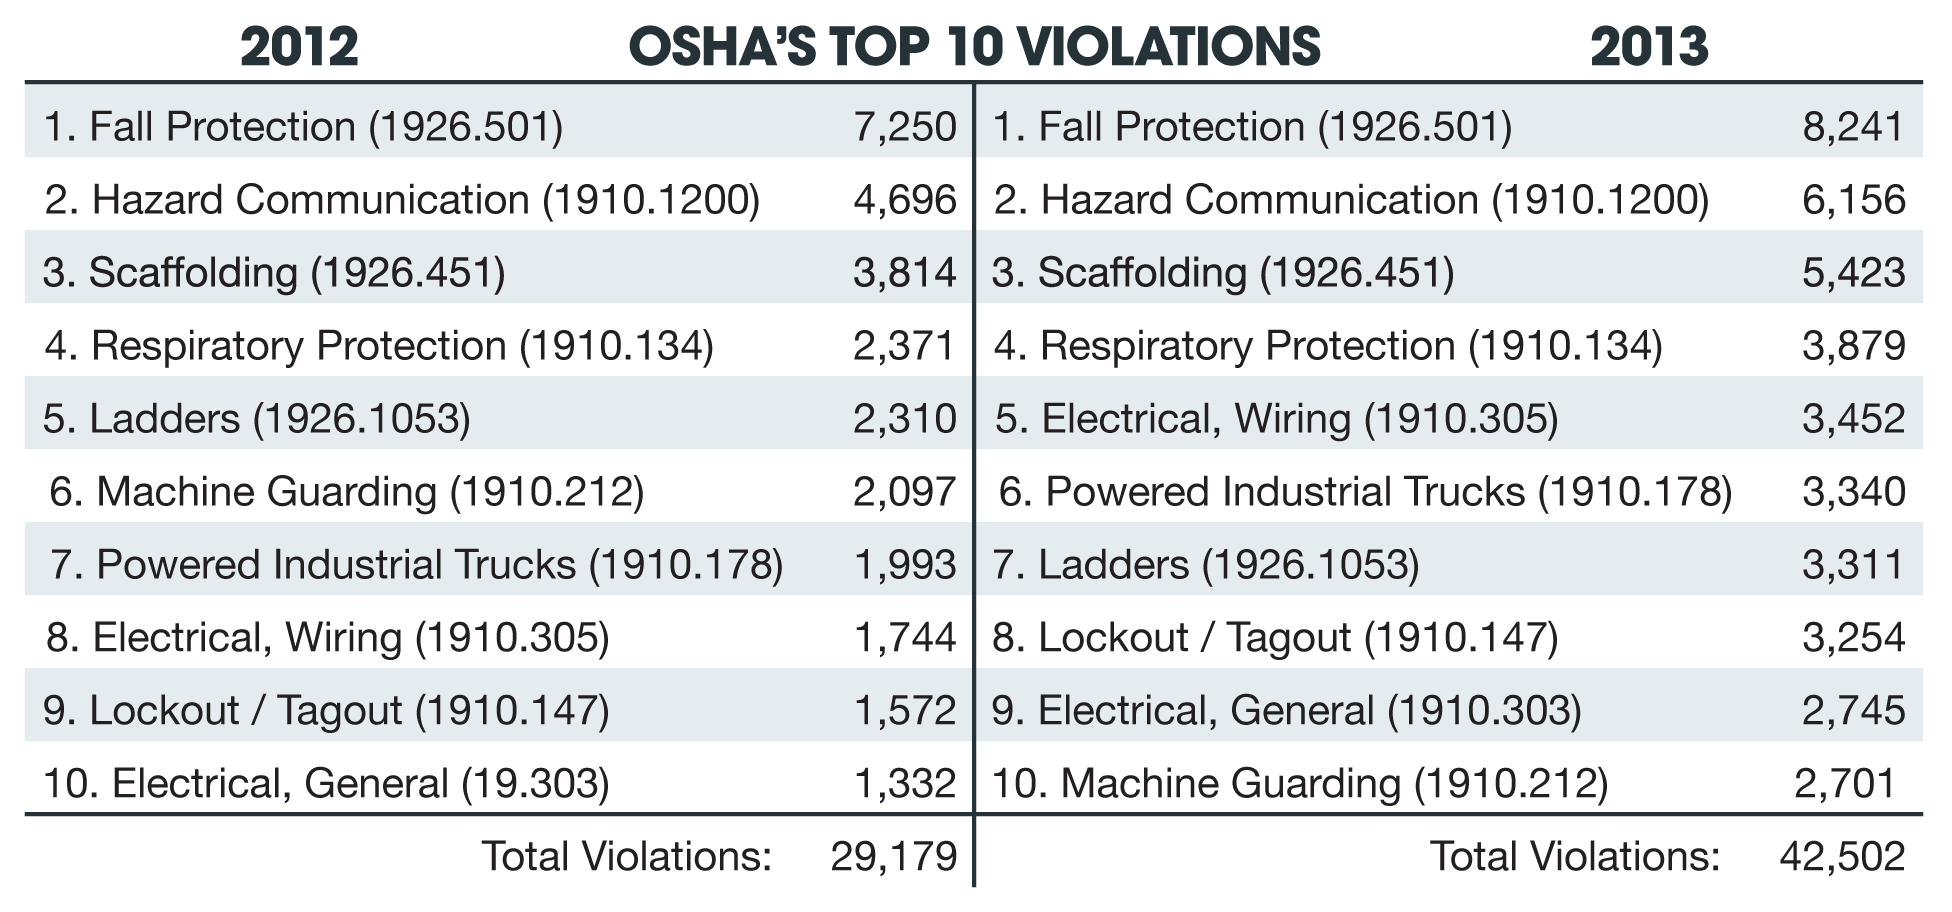 Top 10 osha violations for 2013 reveal increase in citations top 10 osha violations 2012 2013 10313 ja 1betcityfo Images